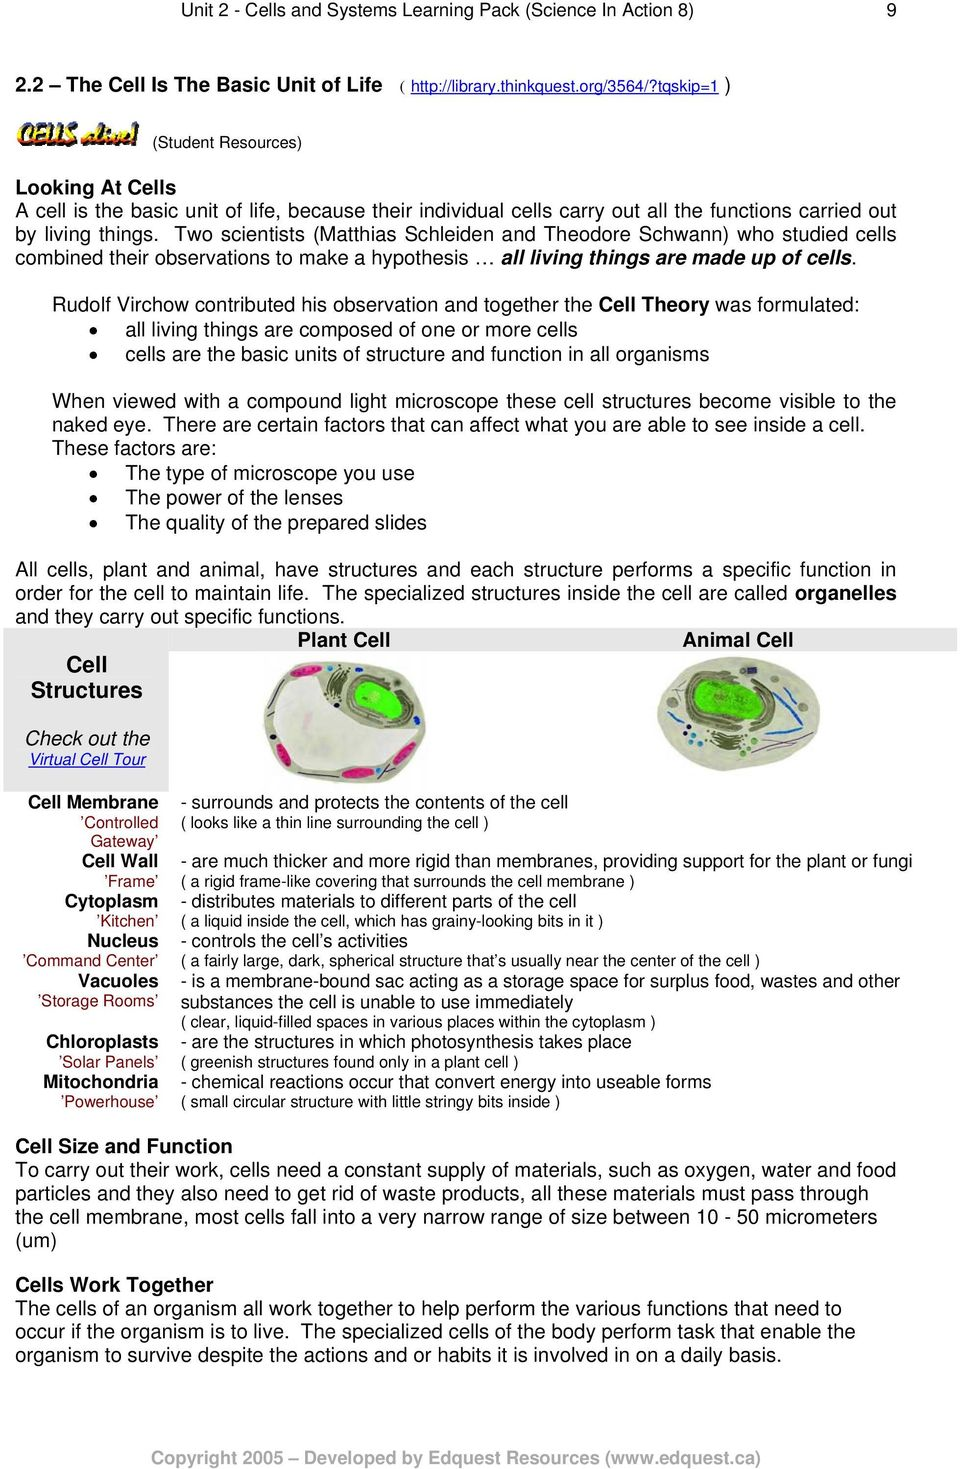 Unit 2 Cells And Systems Learning Pack Science In Action 8 Pdf Photos 3d Plant Cell Diagram From Textbook Animal Two Scientists Matthias Schleiden Theodore Schwann Who Studied Combined Their Observations To